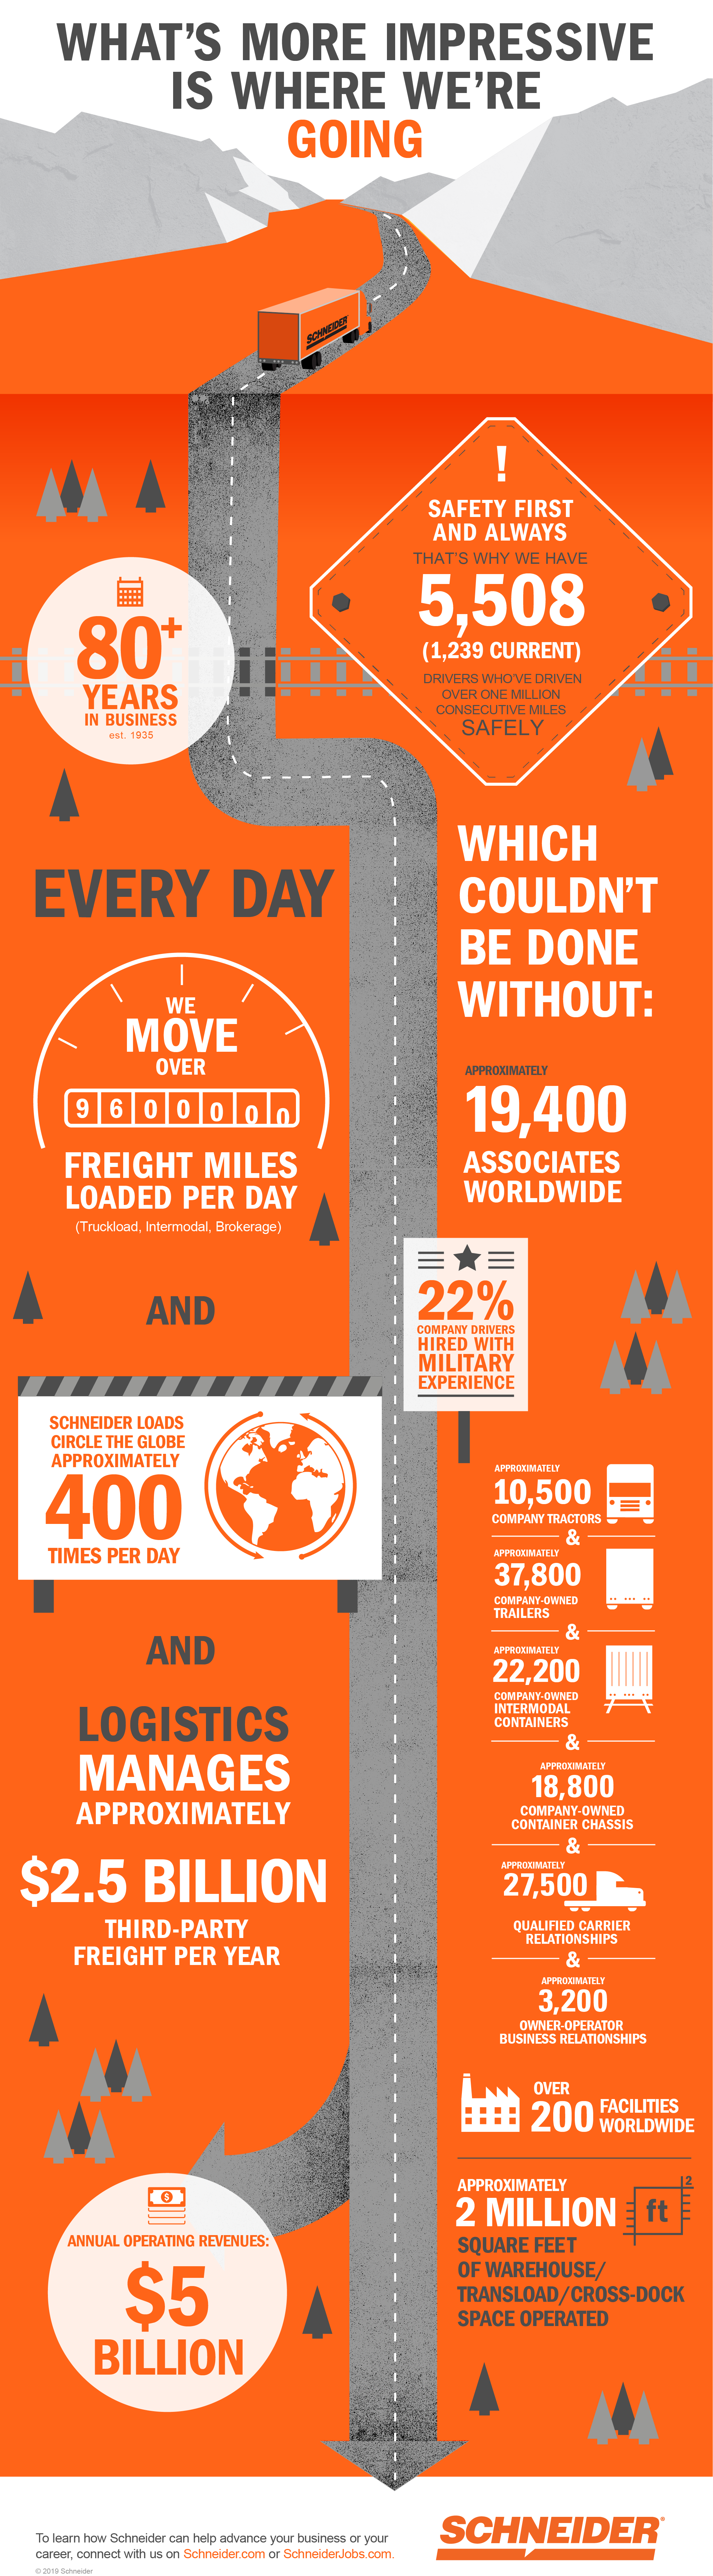 Schneider By The Numbers Infographic